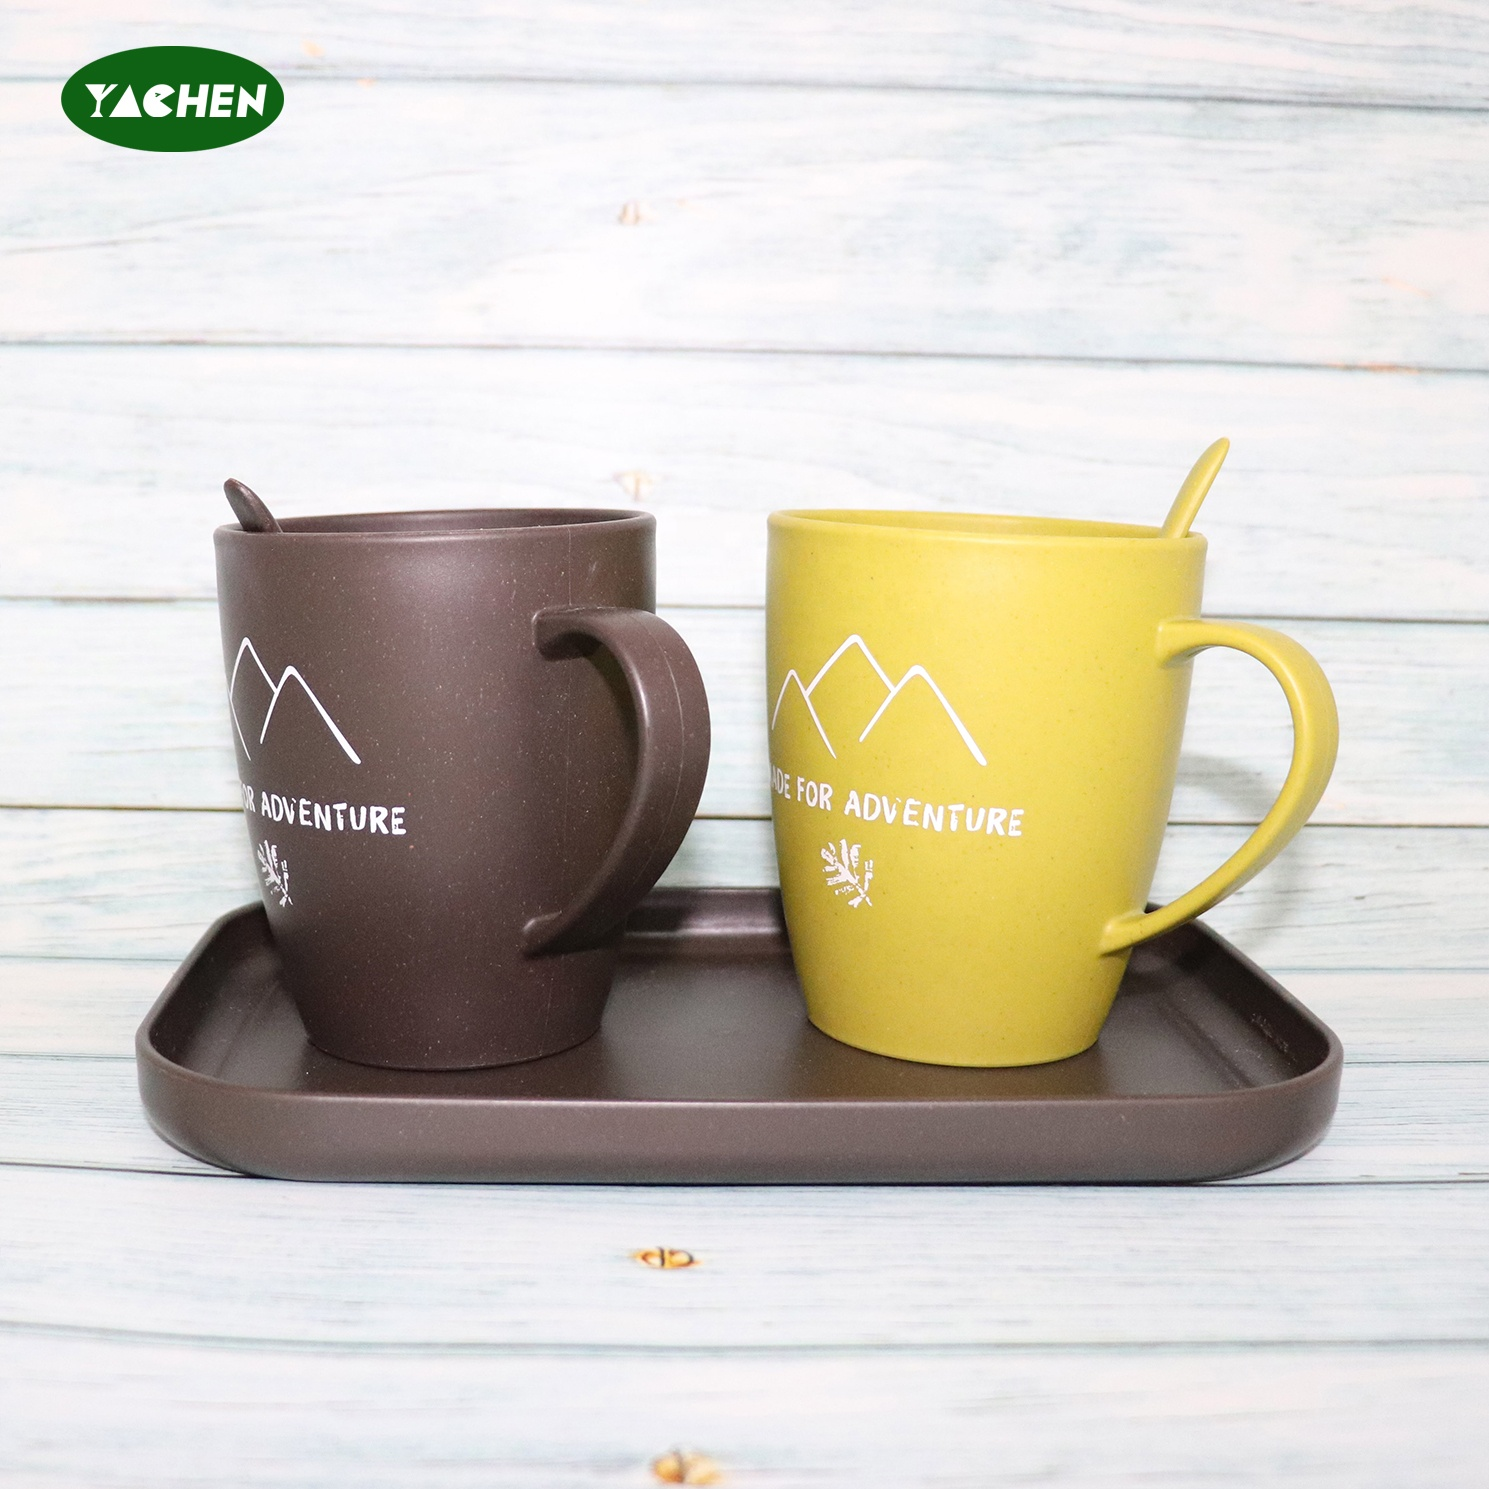 YACHEN hot sale Eco Friendly Sustainable use Customizable Bamboo Fiber coffee cup With Tray